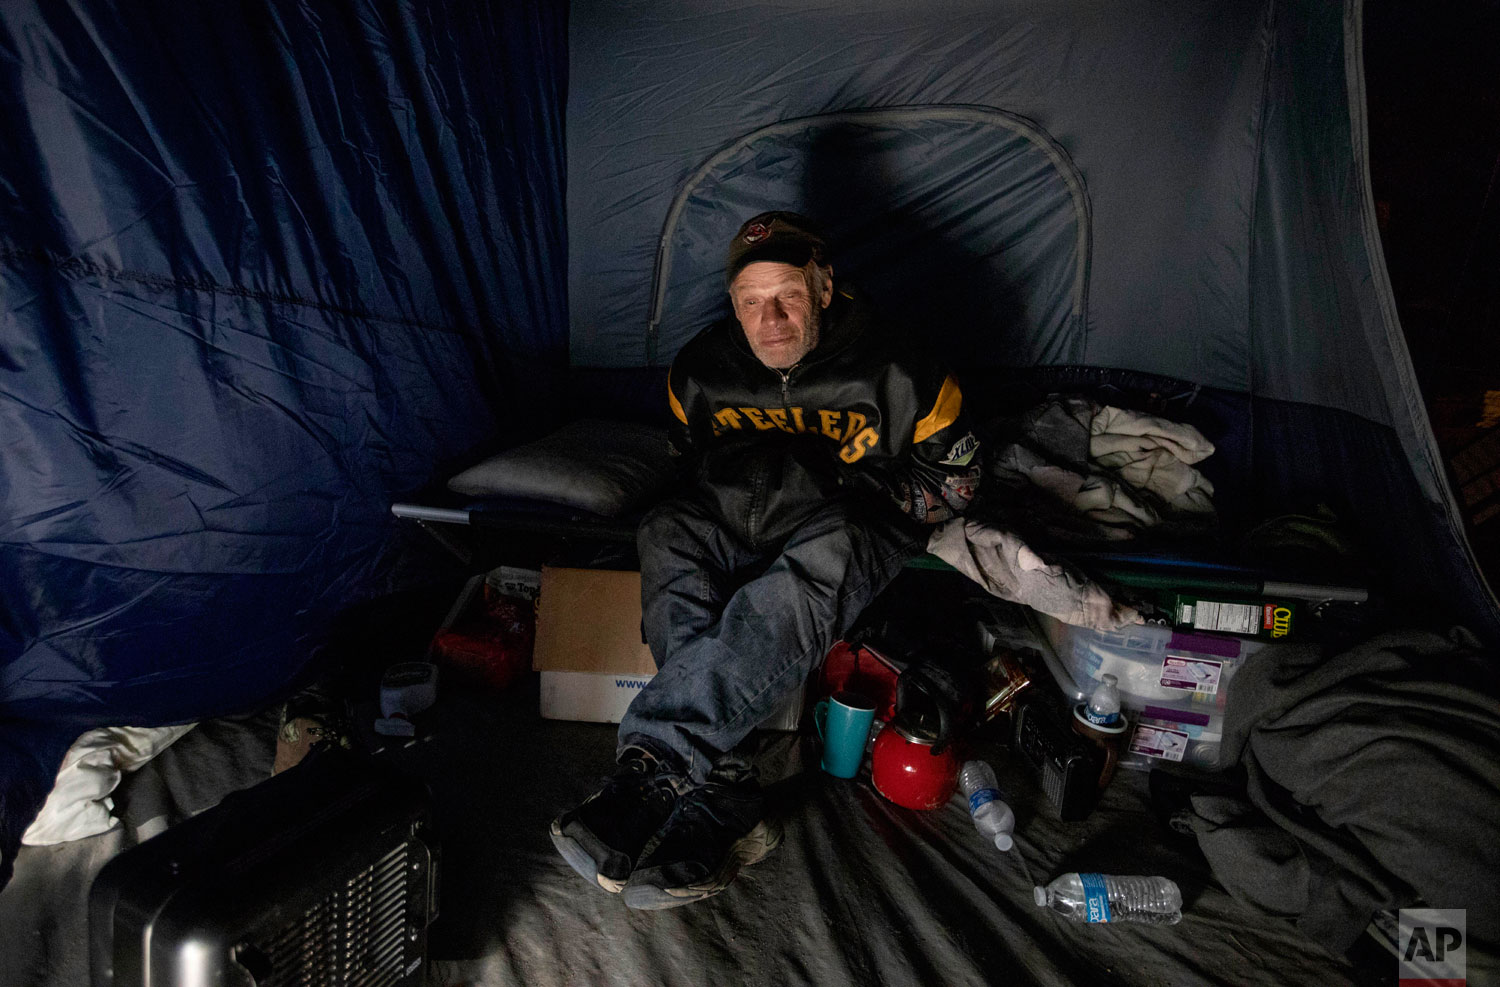 James Huebner sits in his tent in the backyard of a home where he's living with his son and brother after becoming homeless from Hurricane Michael in Youngstown, Fla, Wednesday, Jan. 23, 2019. Huebner has never been homeless before and says they can't find any affordable available housing in the area where they need to remain because of his brother's job at a nearby Walmart store. (AP Photo/David Goldman)